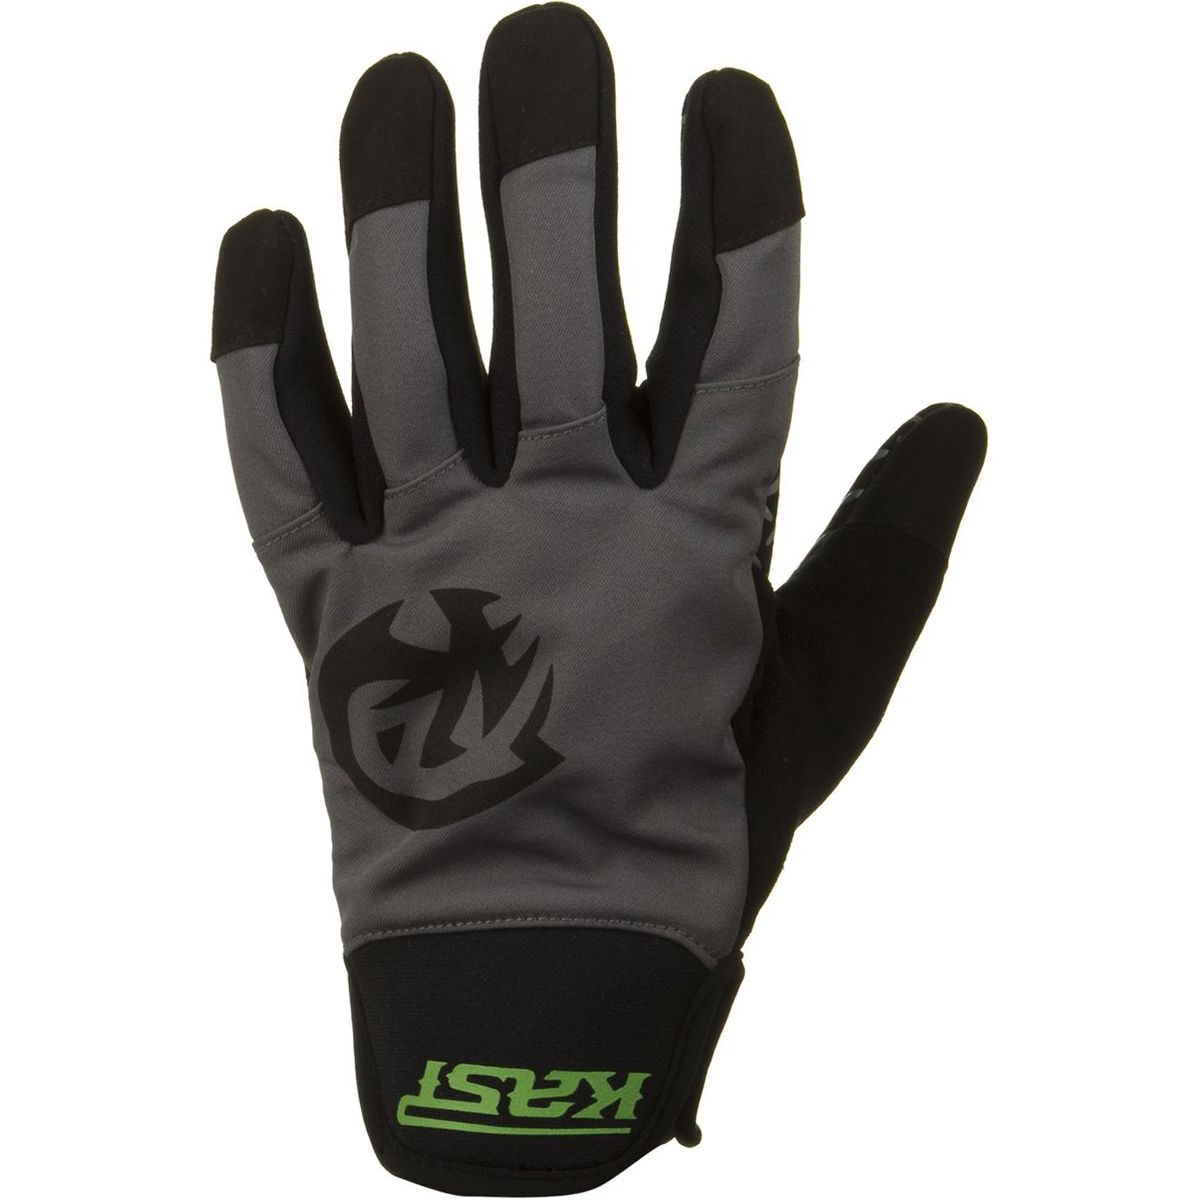 Kast Gear Raptor Glove Slate Grey Black XXL